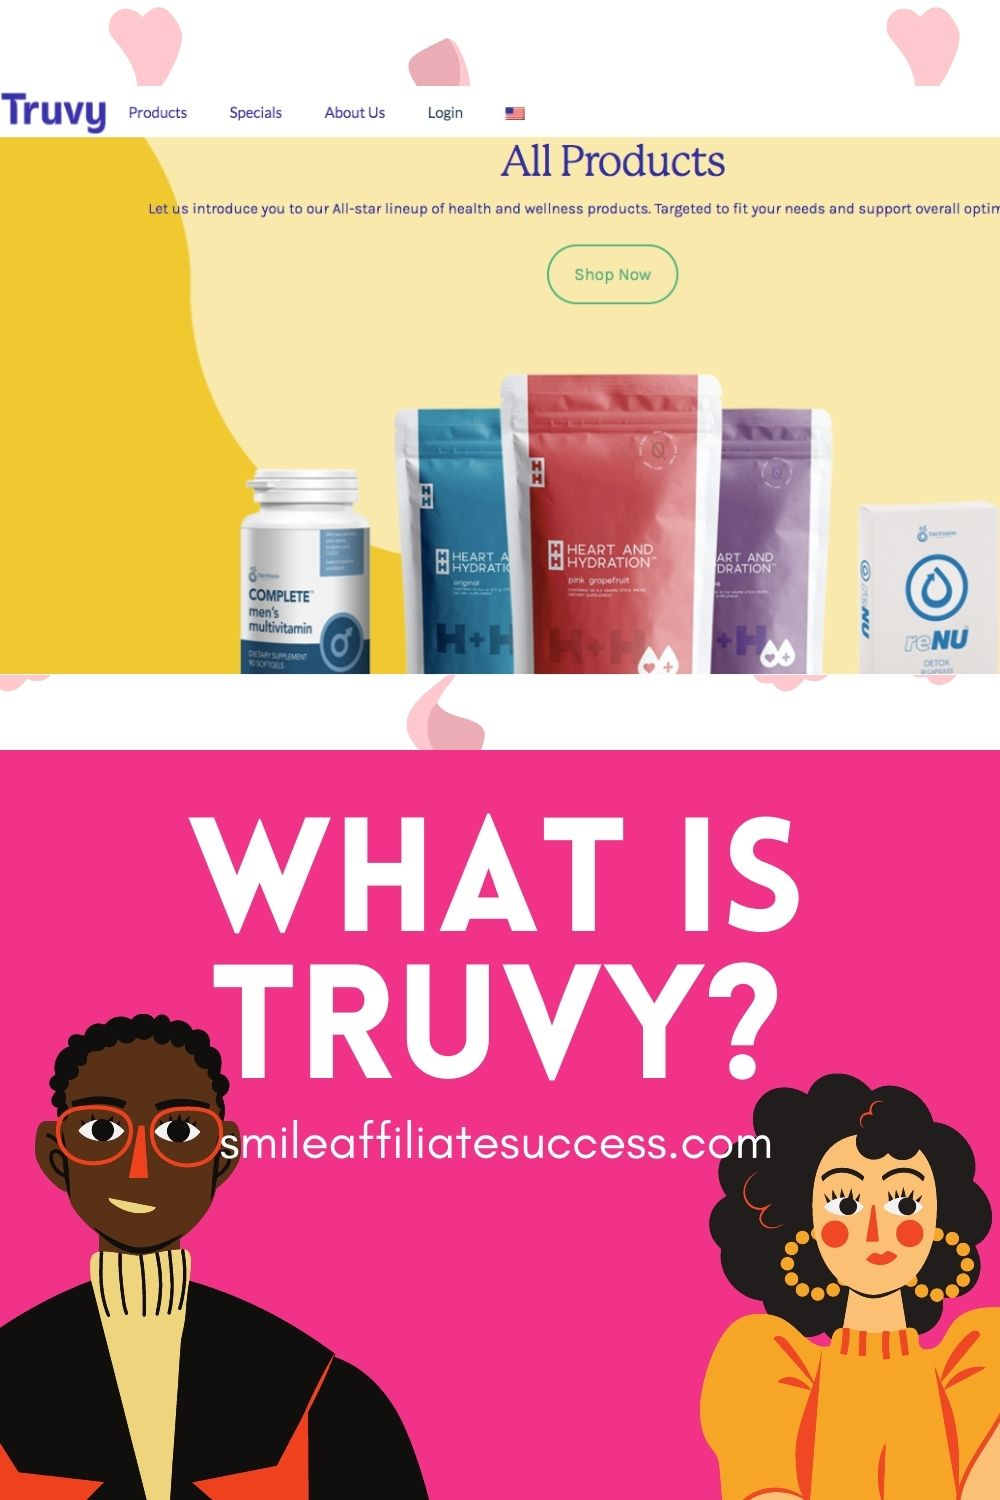 What Is Truvy?